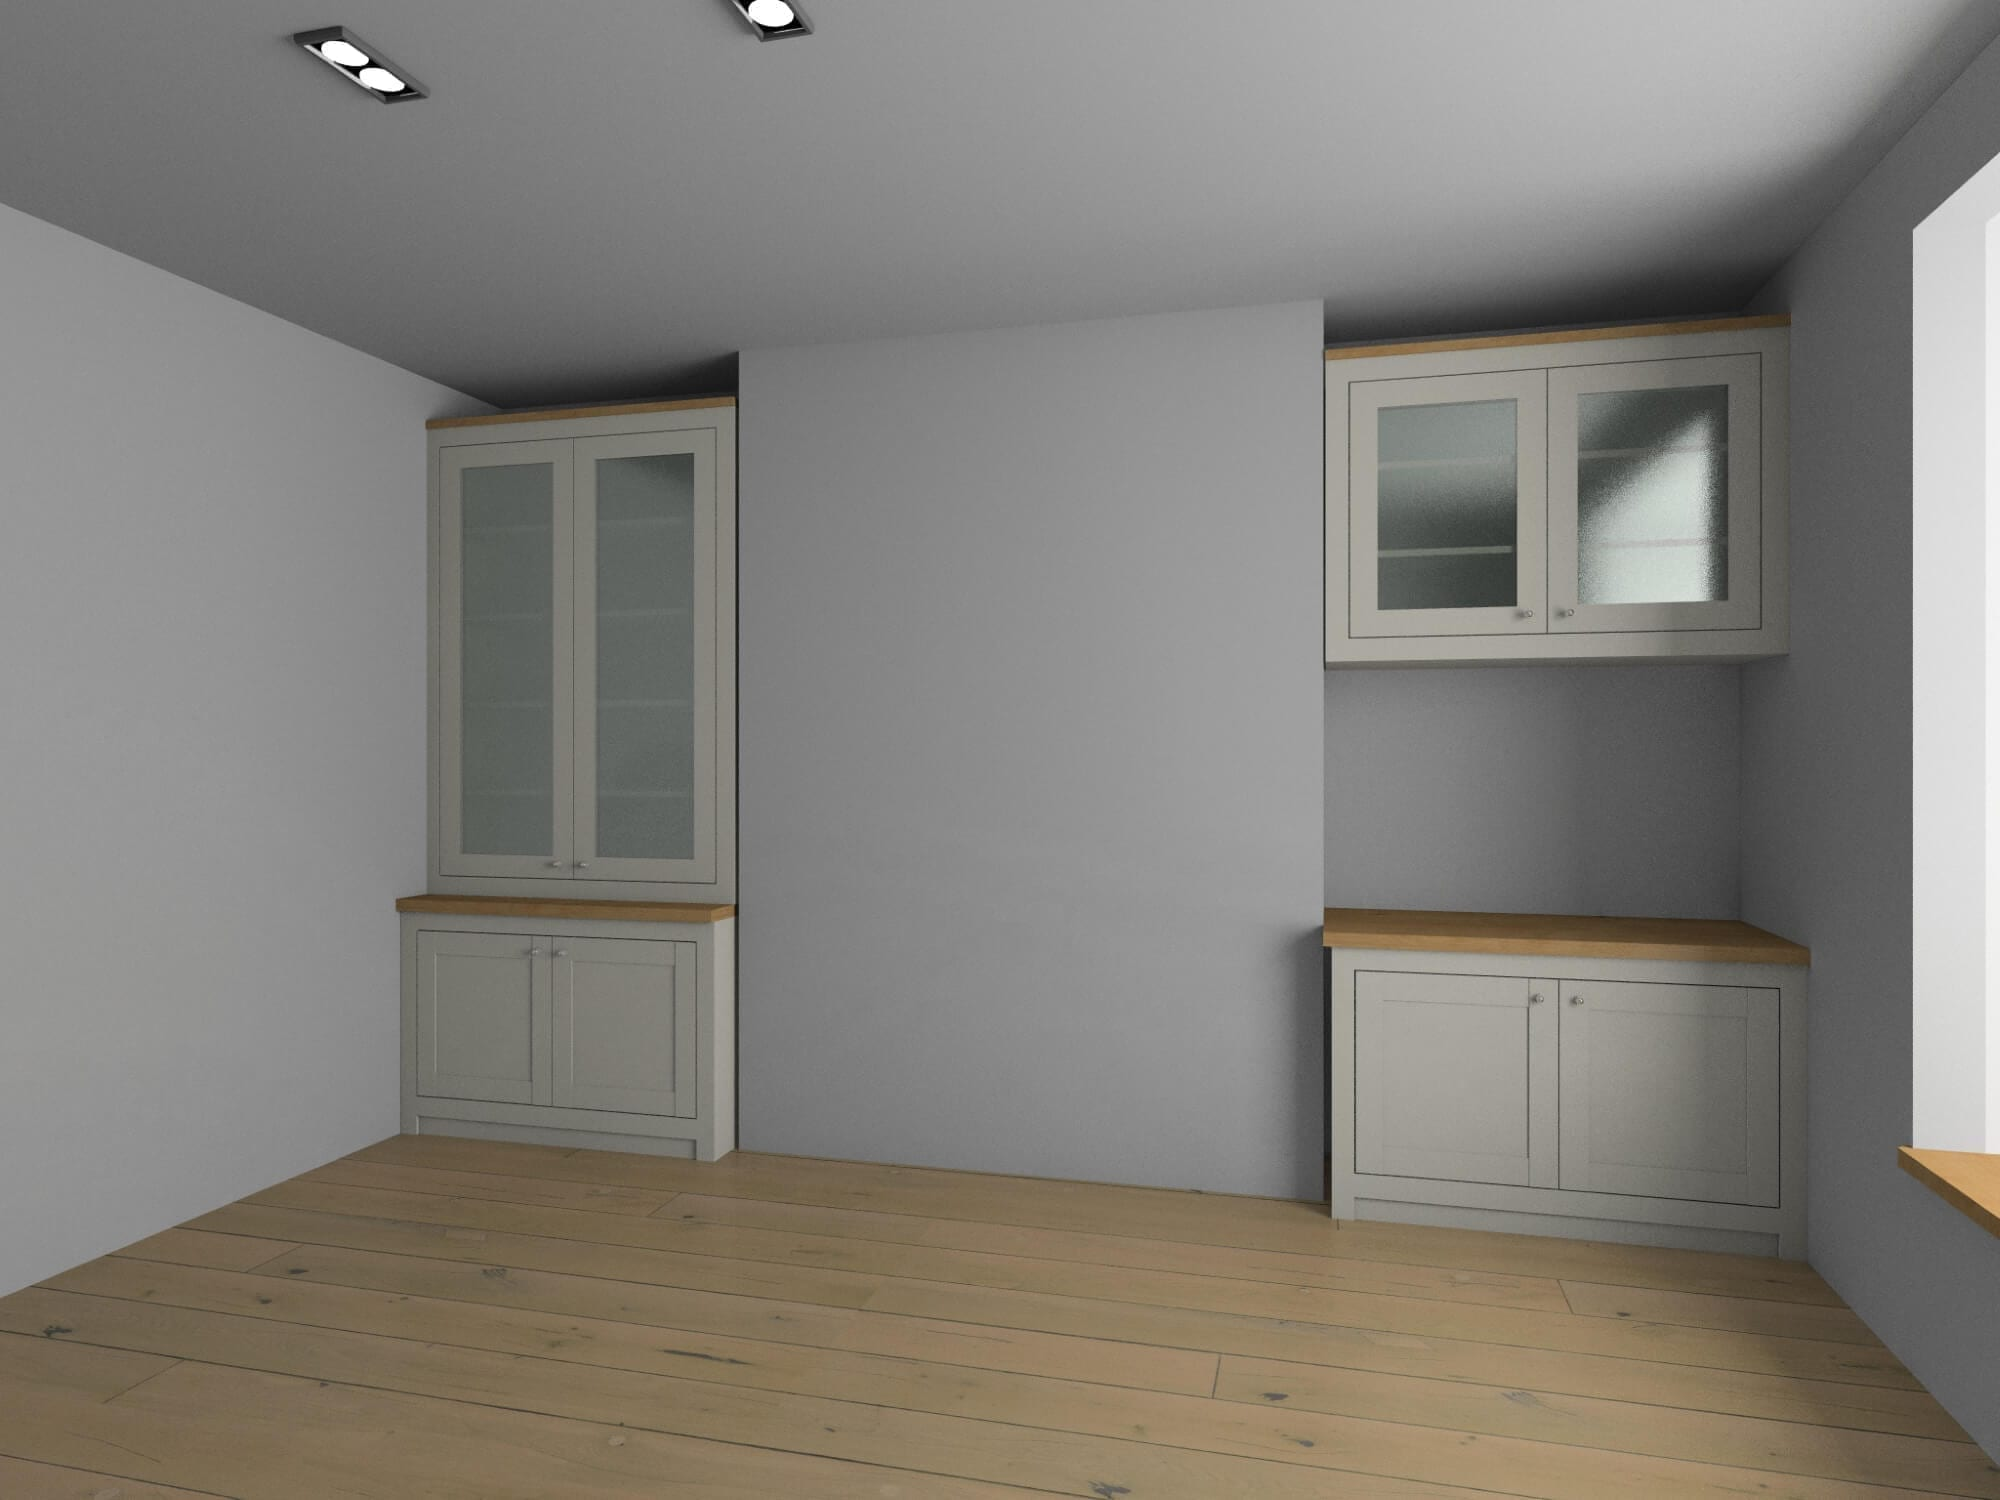 Alcove project rendering